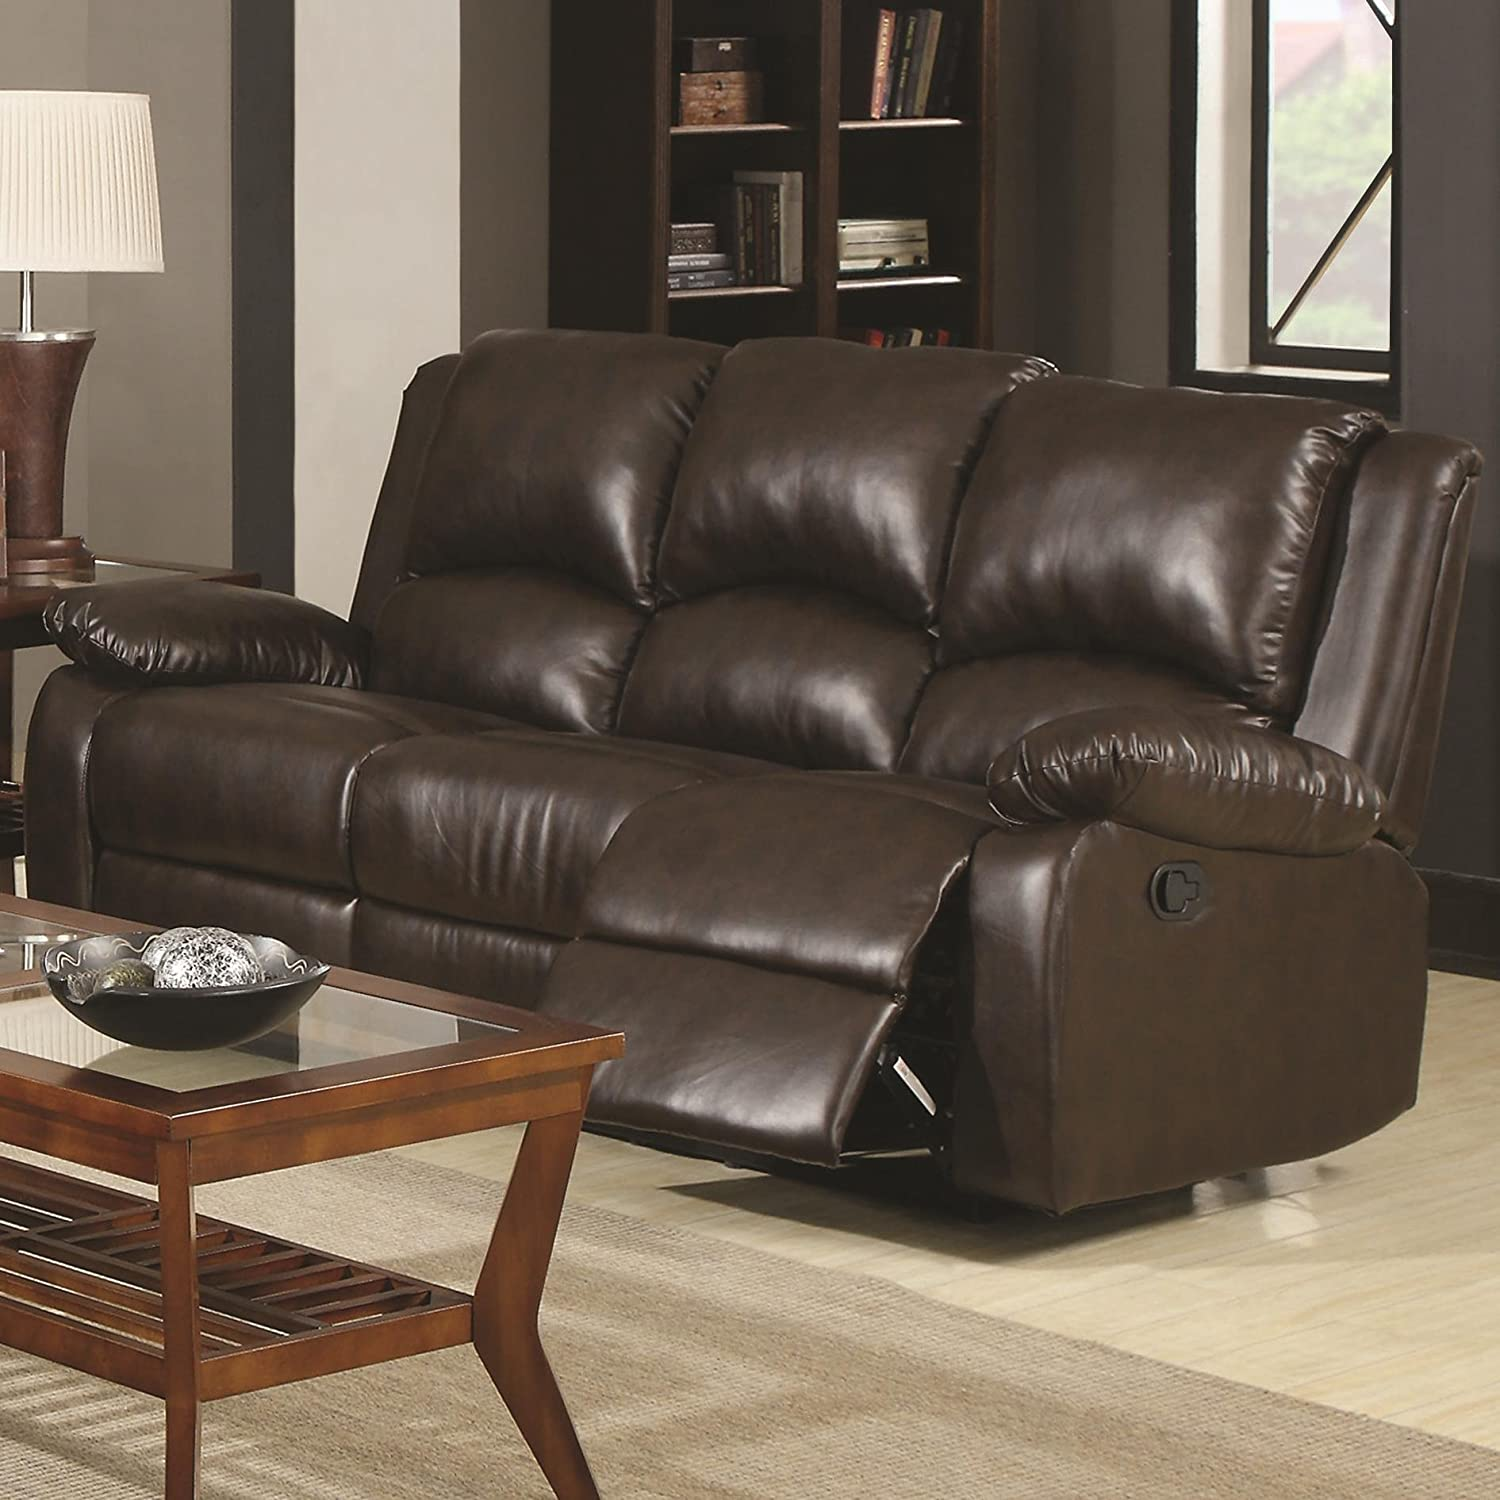 Coaster Home Furnishings 600971 Casual Motion Sofa - Brown